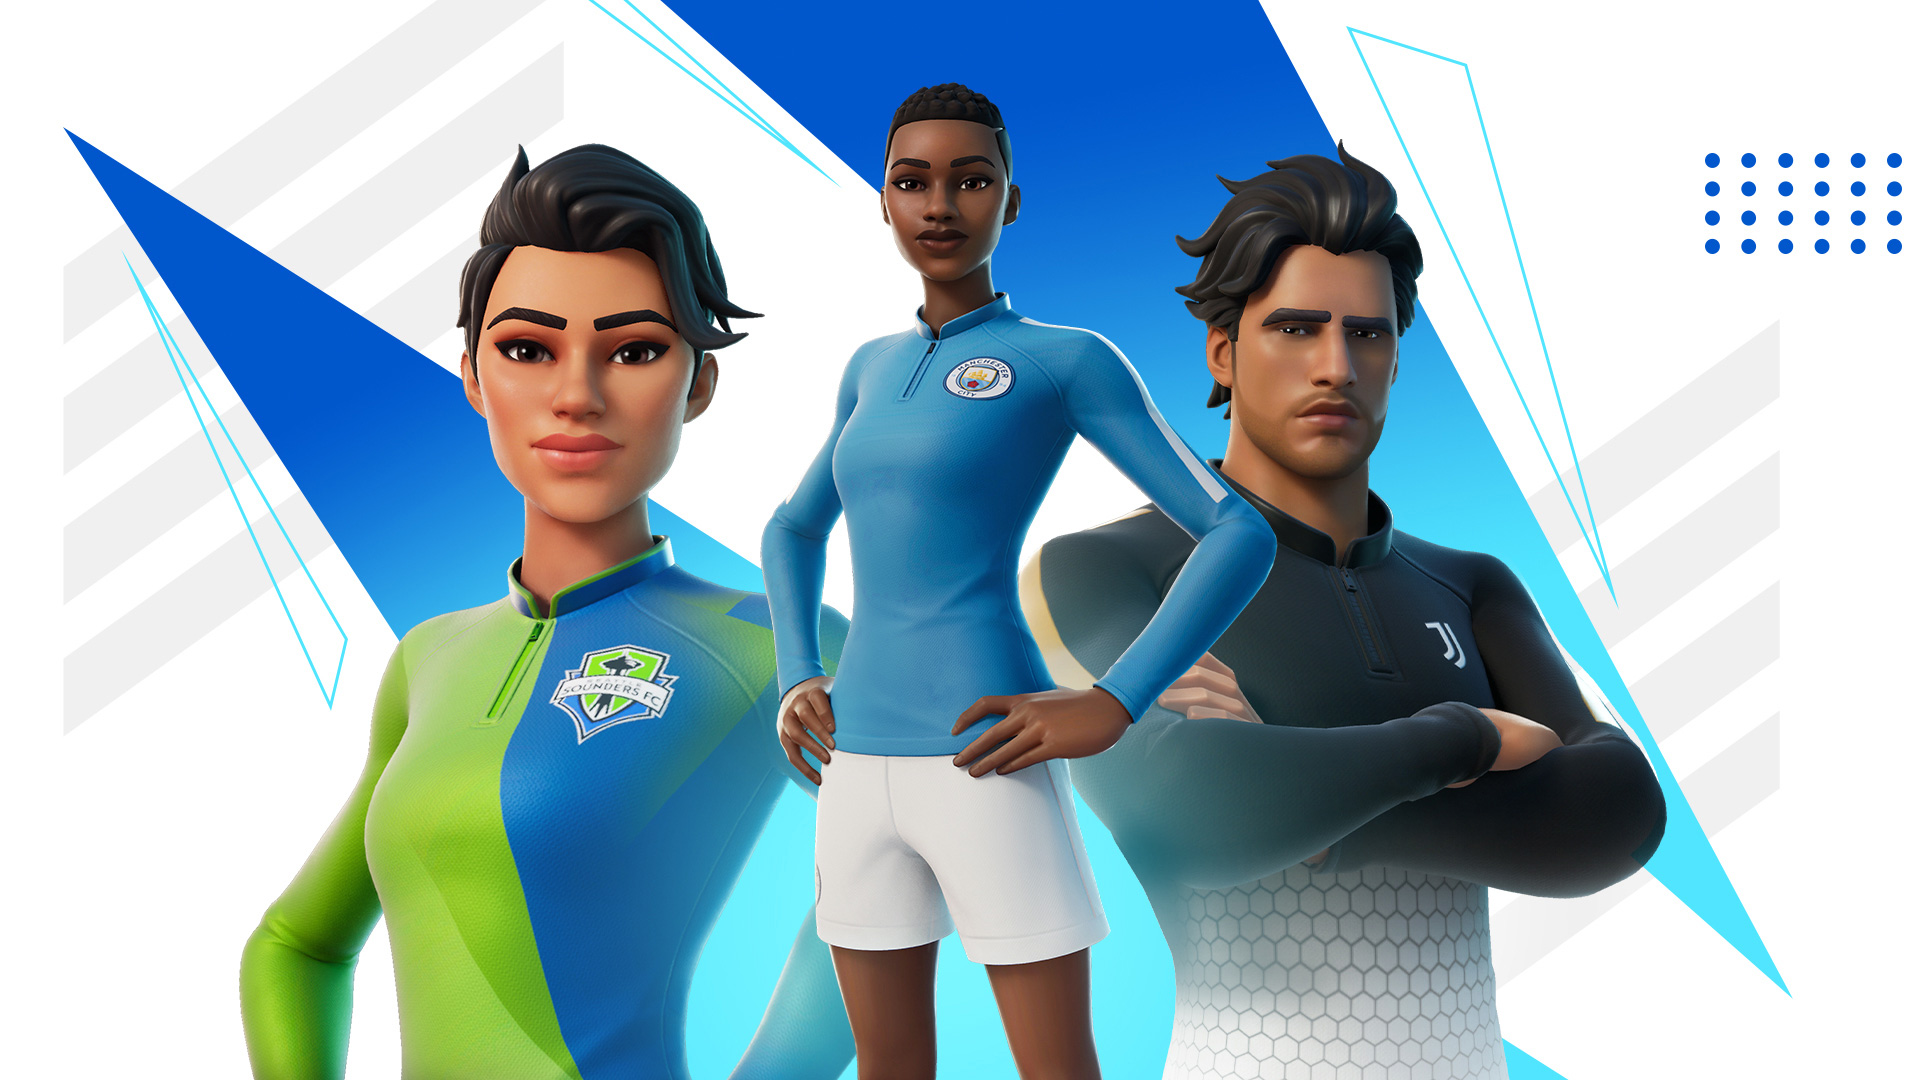 'The sky's the limit on where this can go' — The worlds of Fortnite and football collide